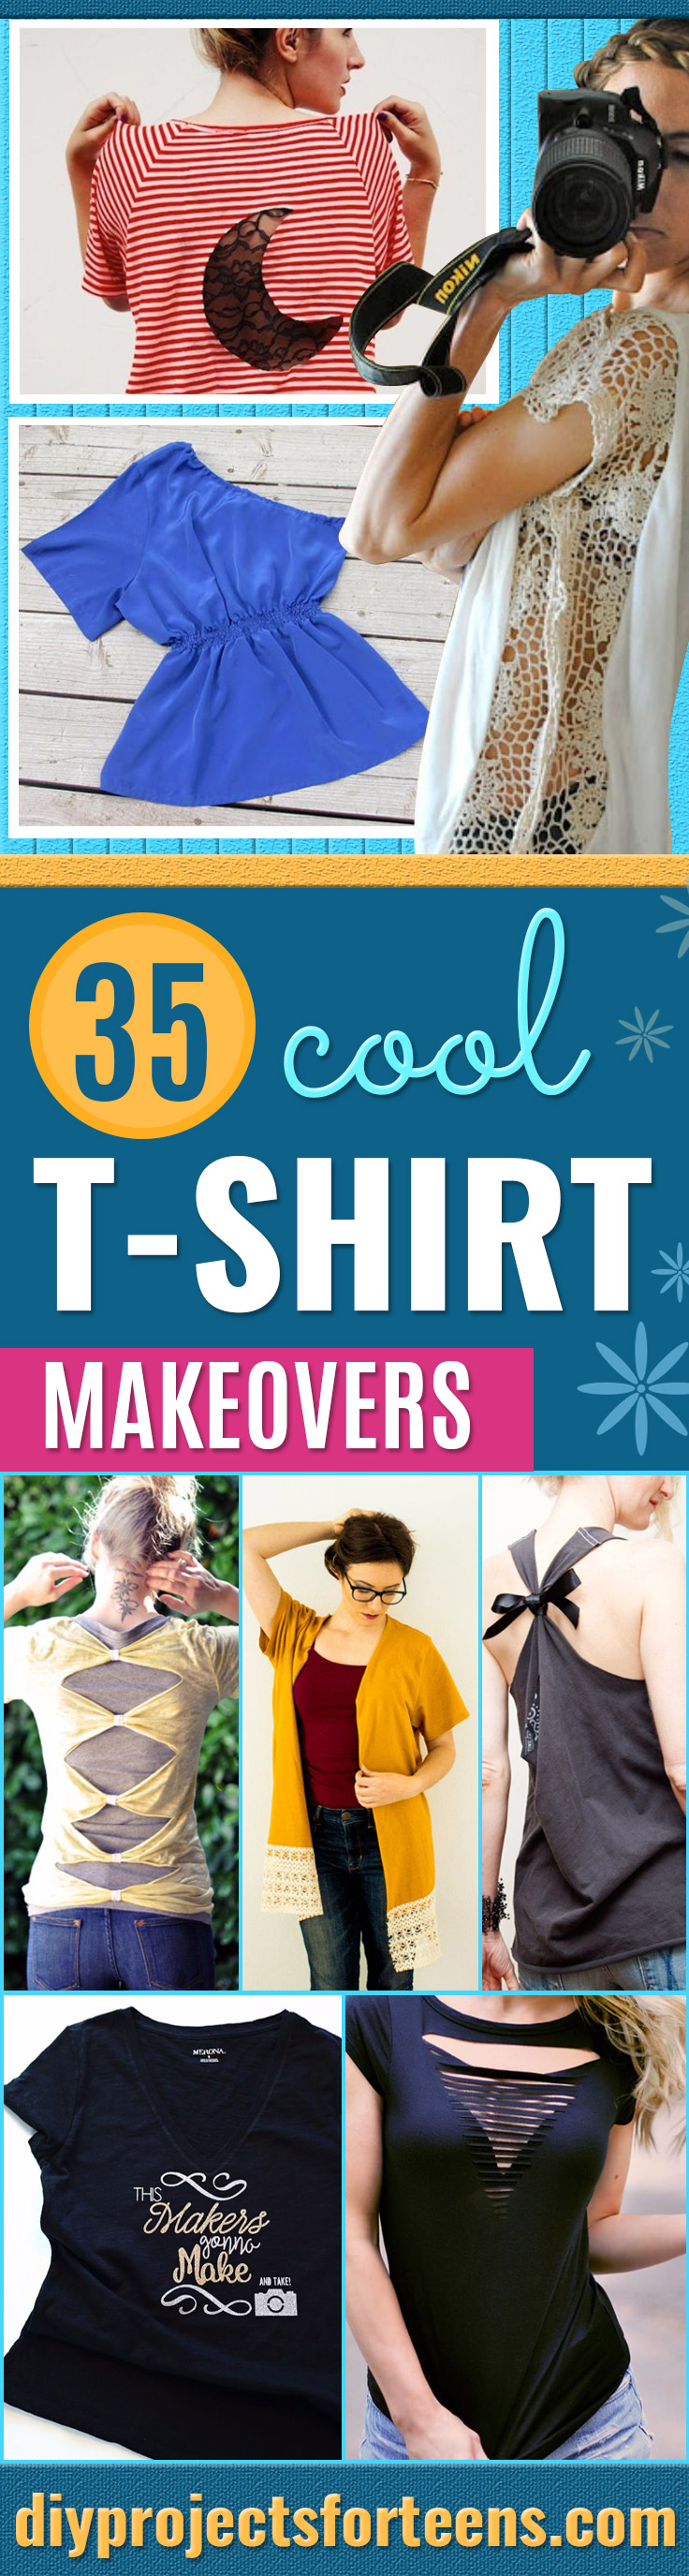 T-Shirt Makeovers - Fun Upcycle Ideas for Tees - How To Make Simple Awesome Summer Style Projects - Cute Sleeve and Neckline Ideas - Cheap and Easy Ways To Upcycle Tshirts for Fun Clothes and Fashion - Quick Projects for Teens and Teenagers on A Budget http://diyprojectsforteens.com/t-shirt-makeovers